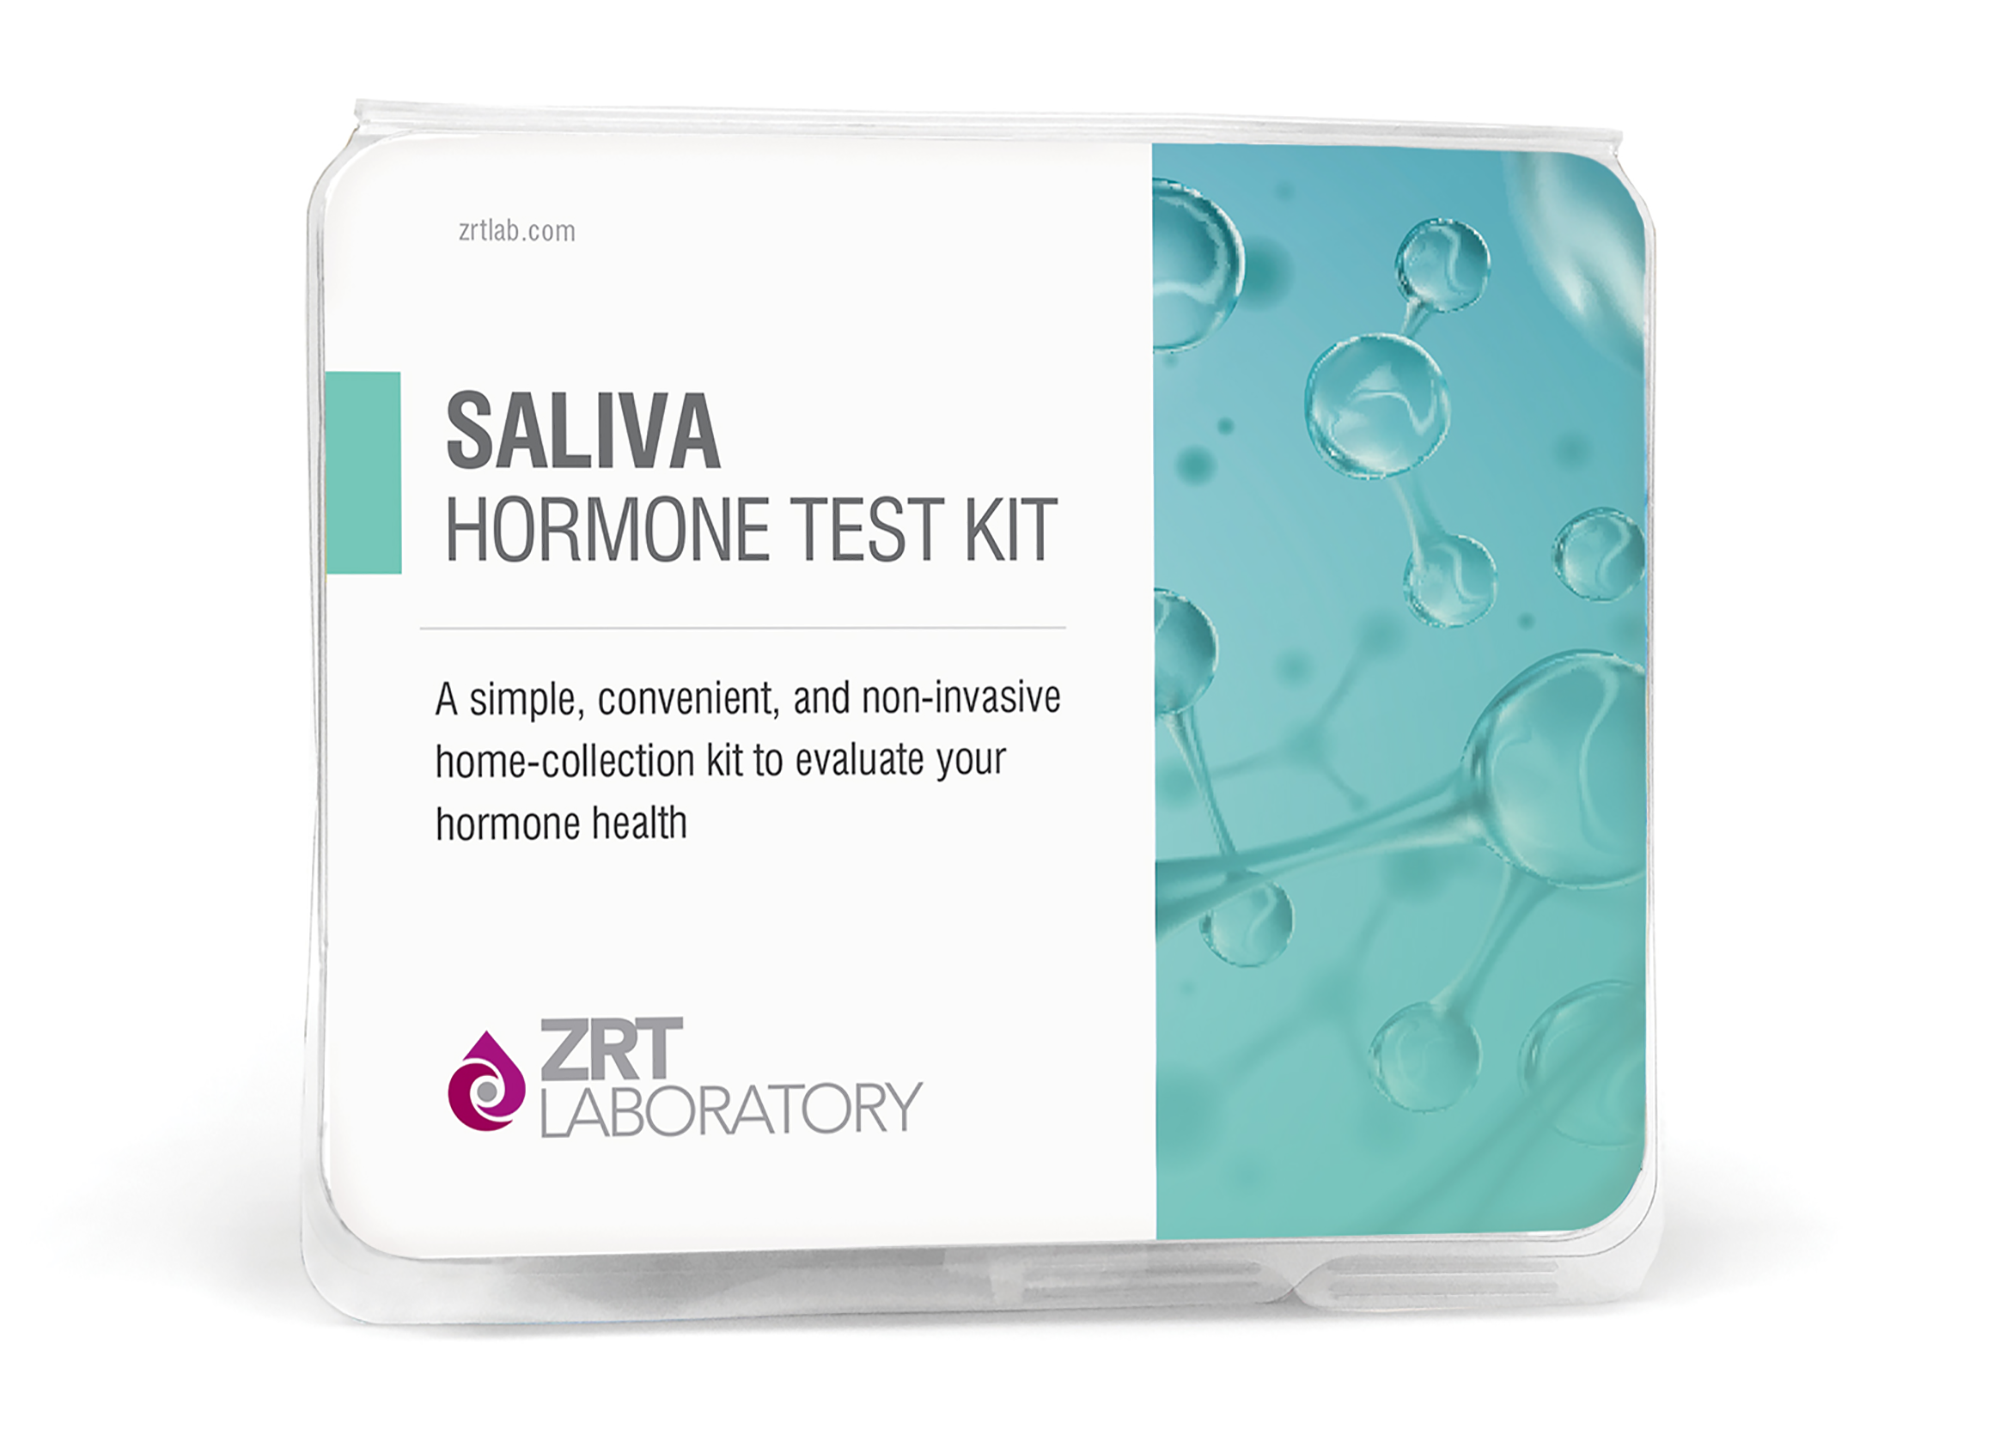 ZRT Laboratory Saliva Hormone Test Kit